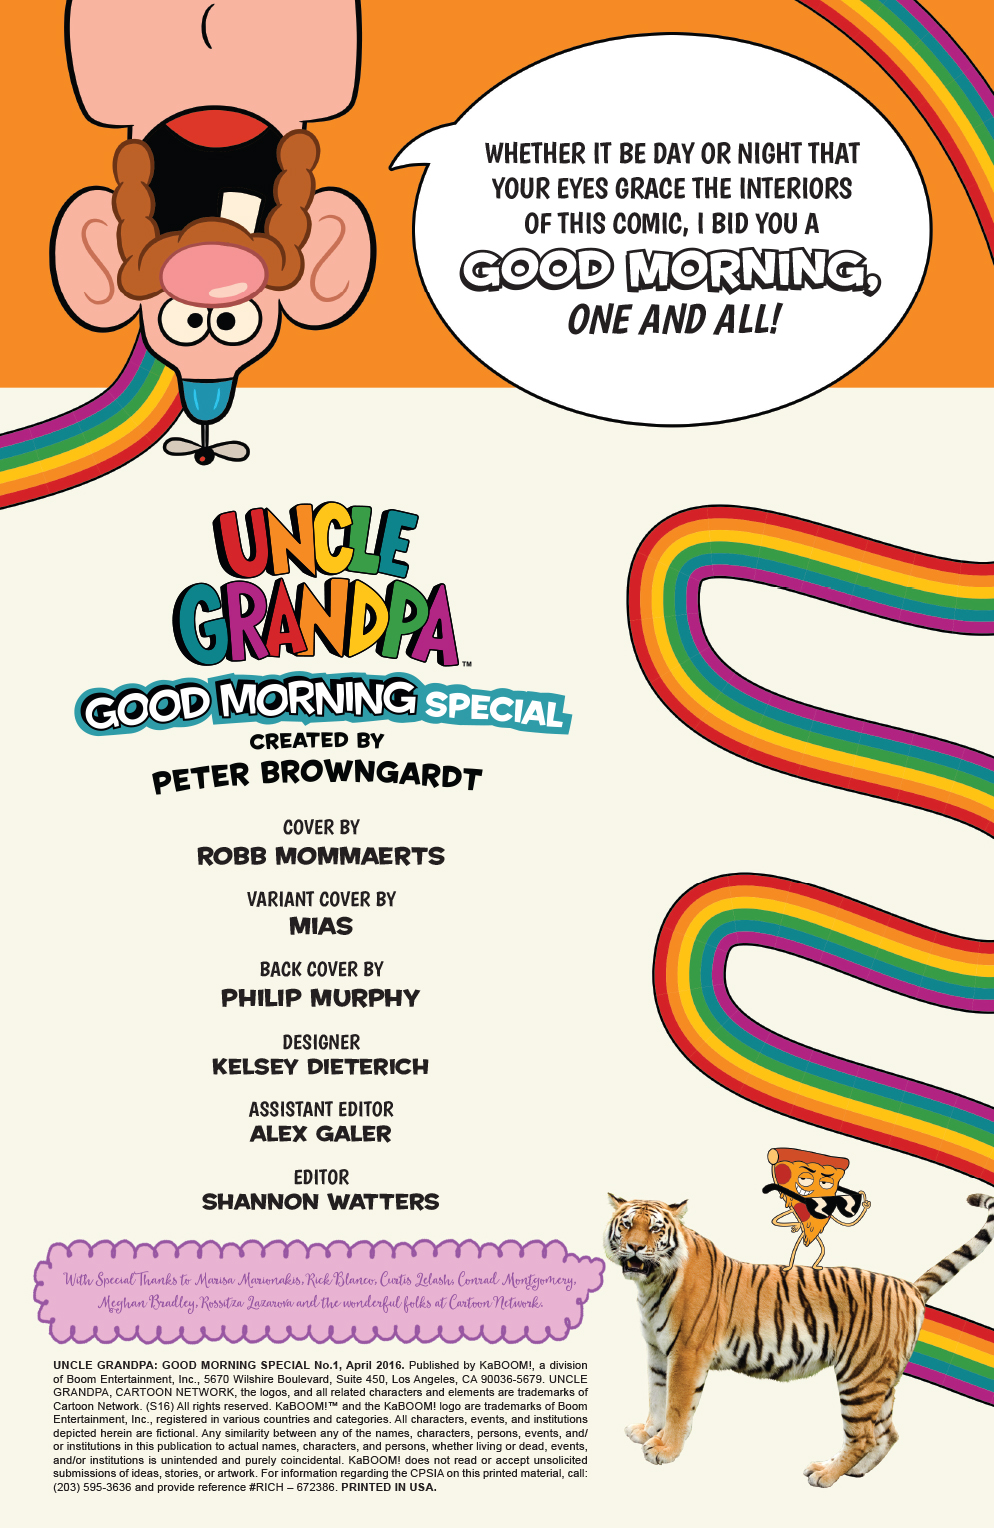 UncleGrandpa_GoodMorning_PRESS-2